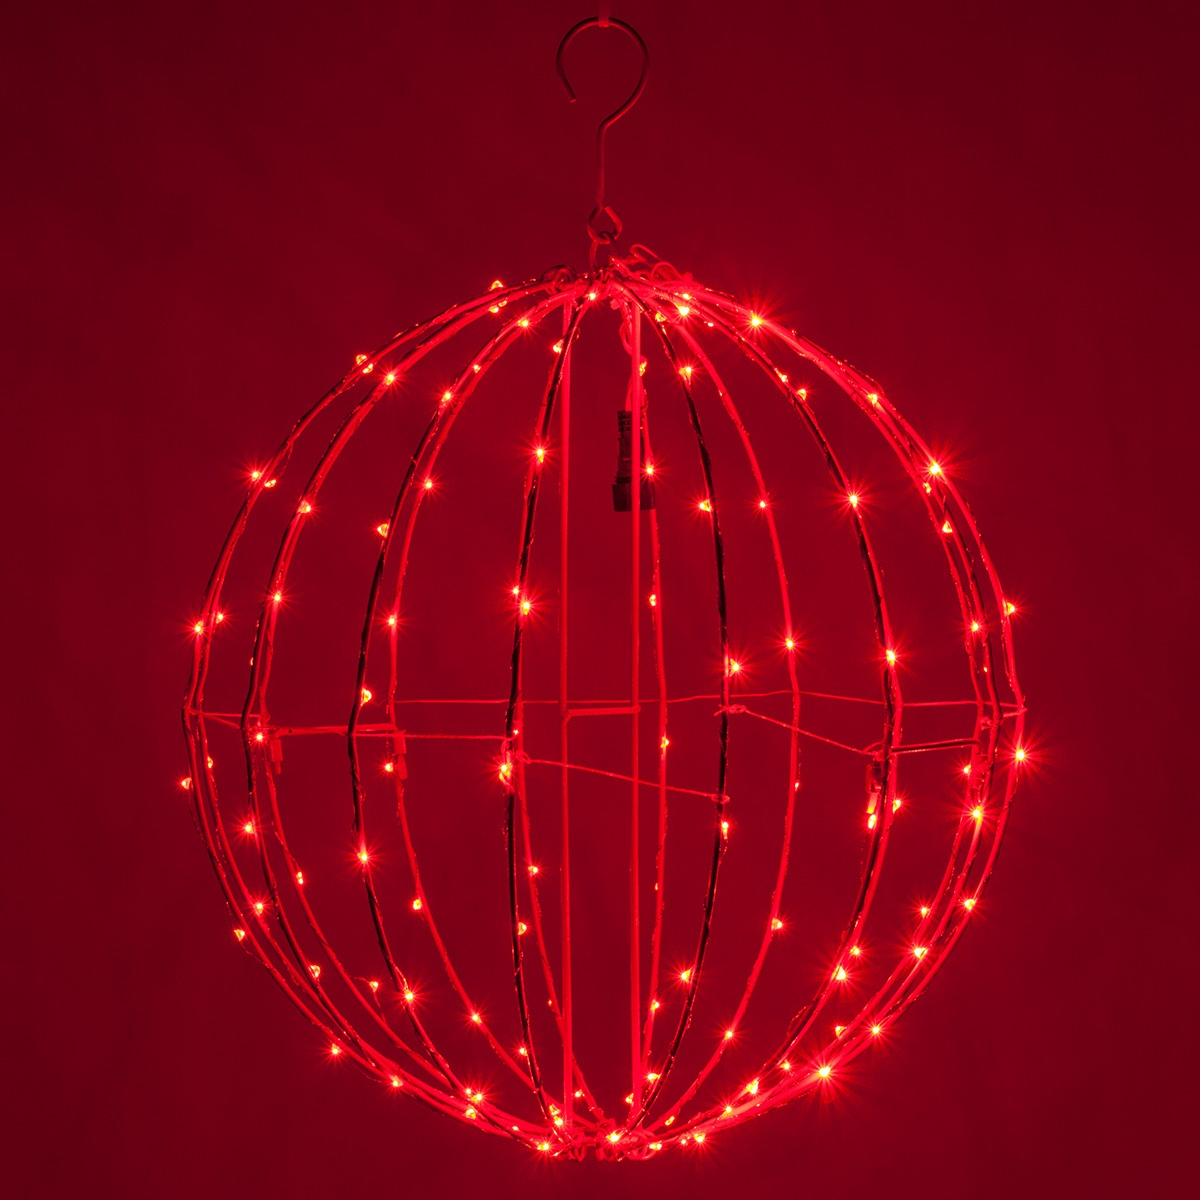 Red Led Fairy Christmas Light Ball Fold Flat Red Frame